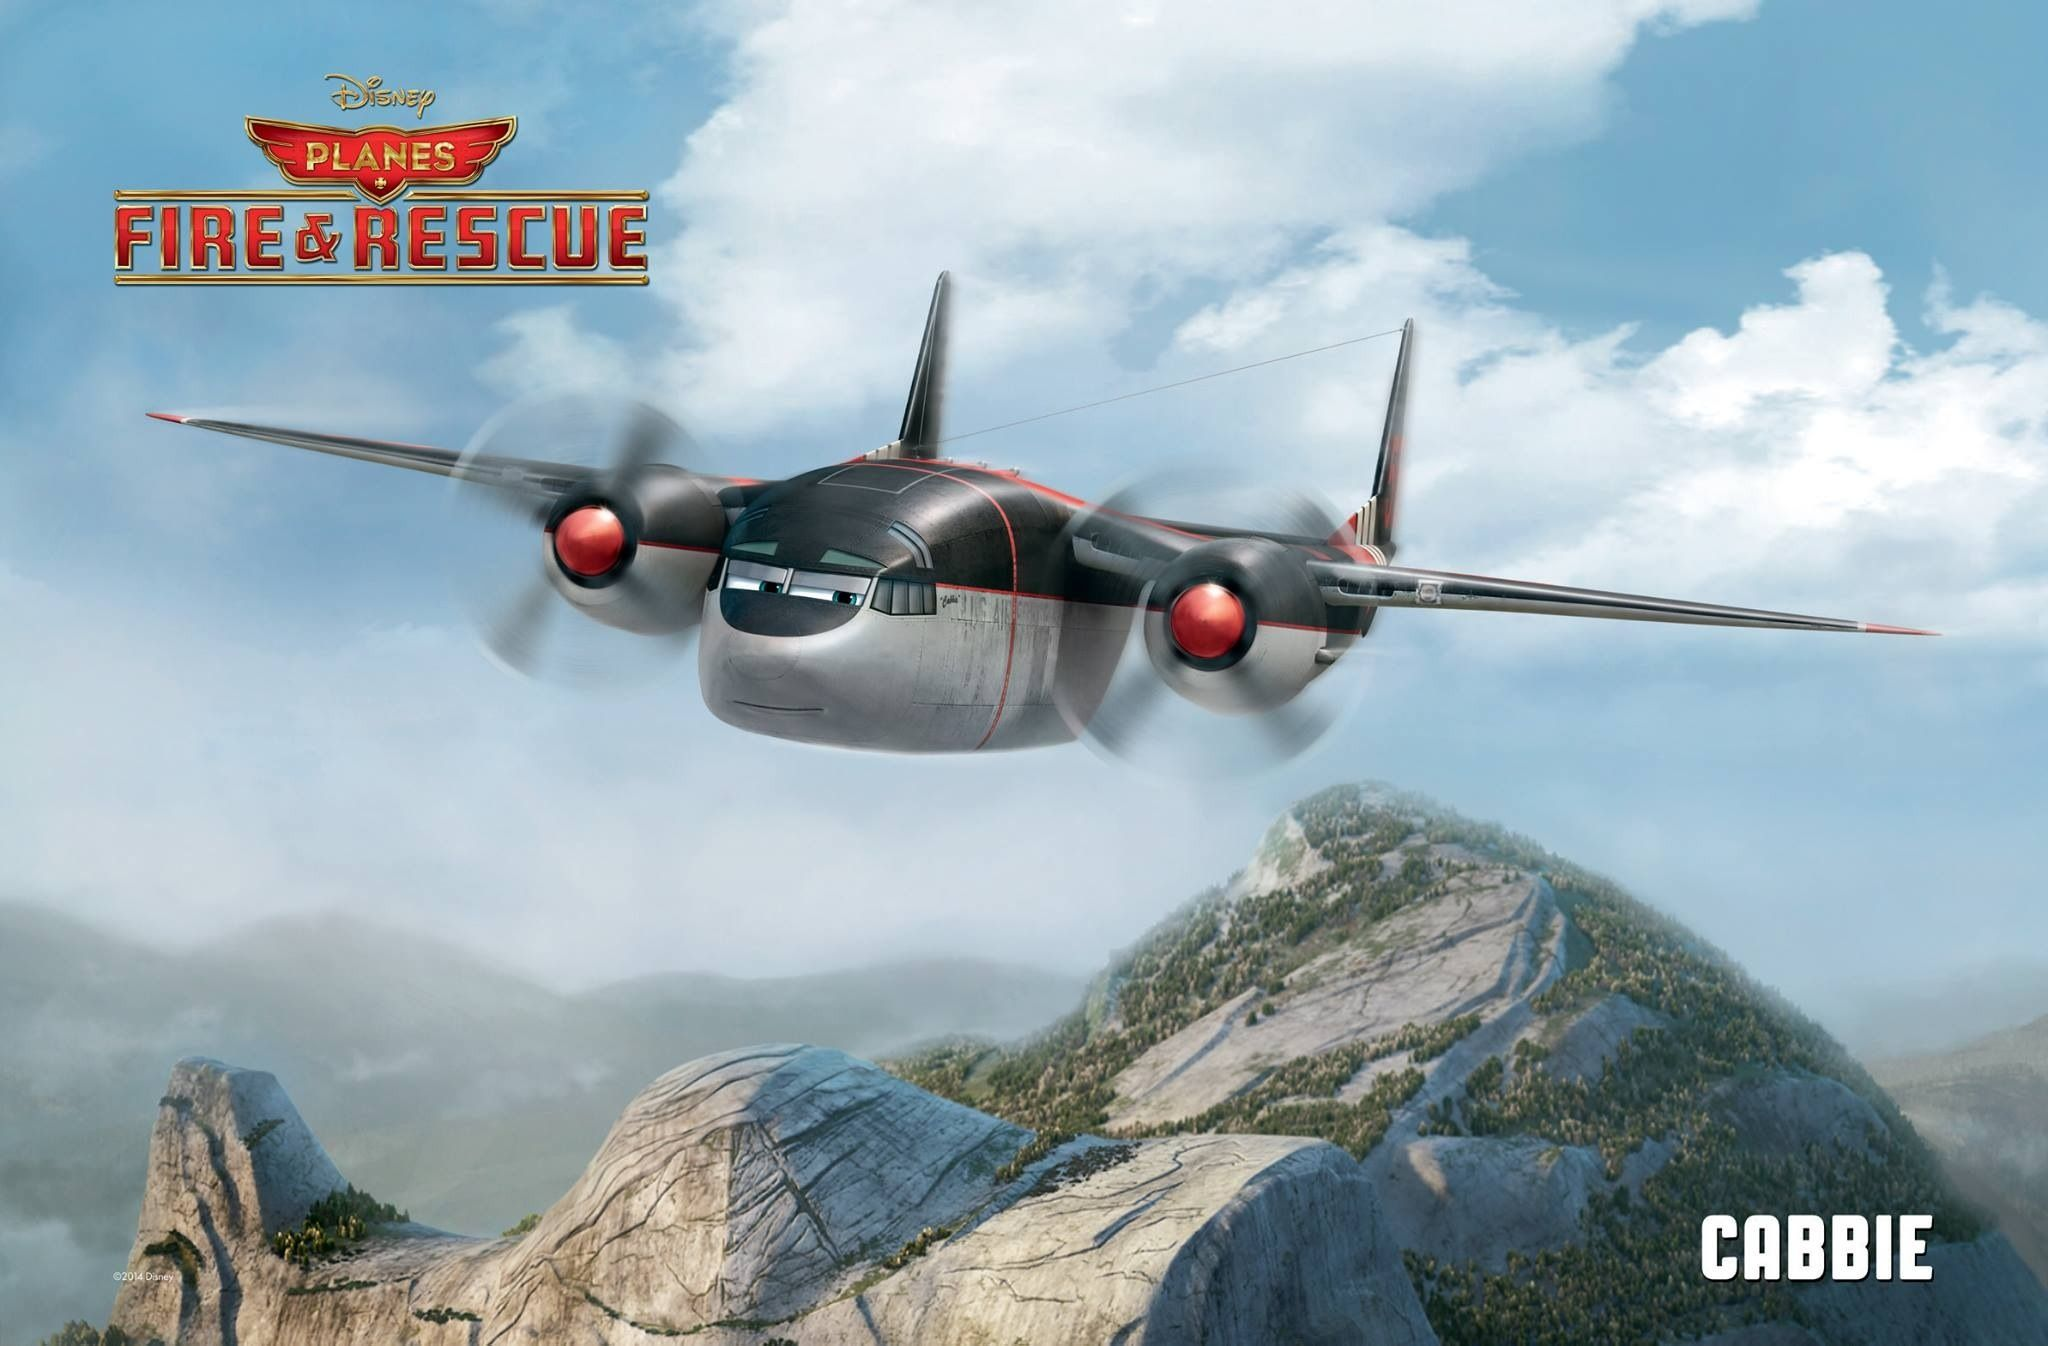 Planes Fire And Rescue Toys Dynamite